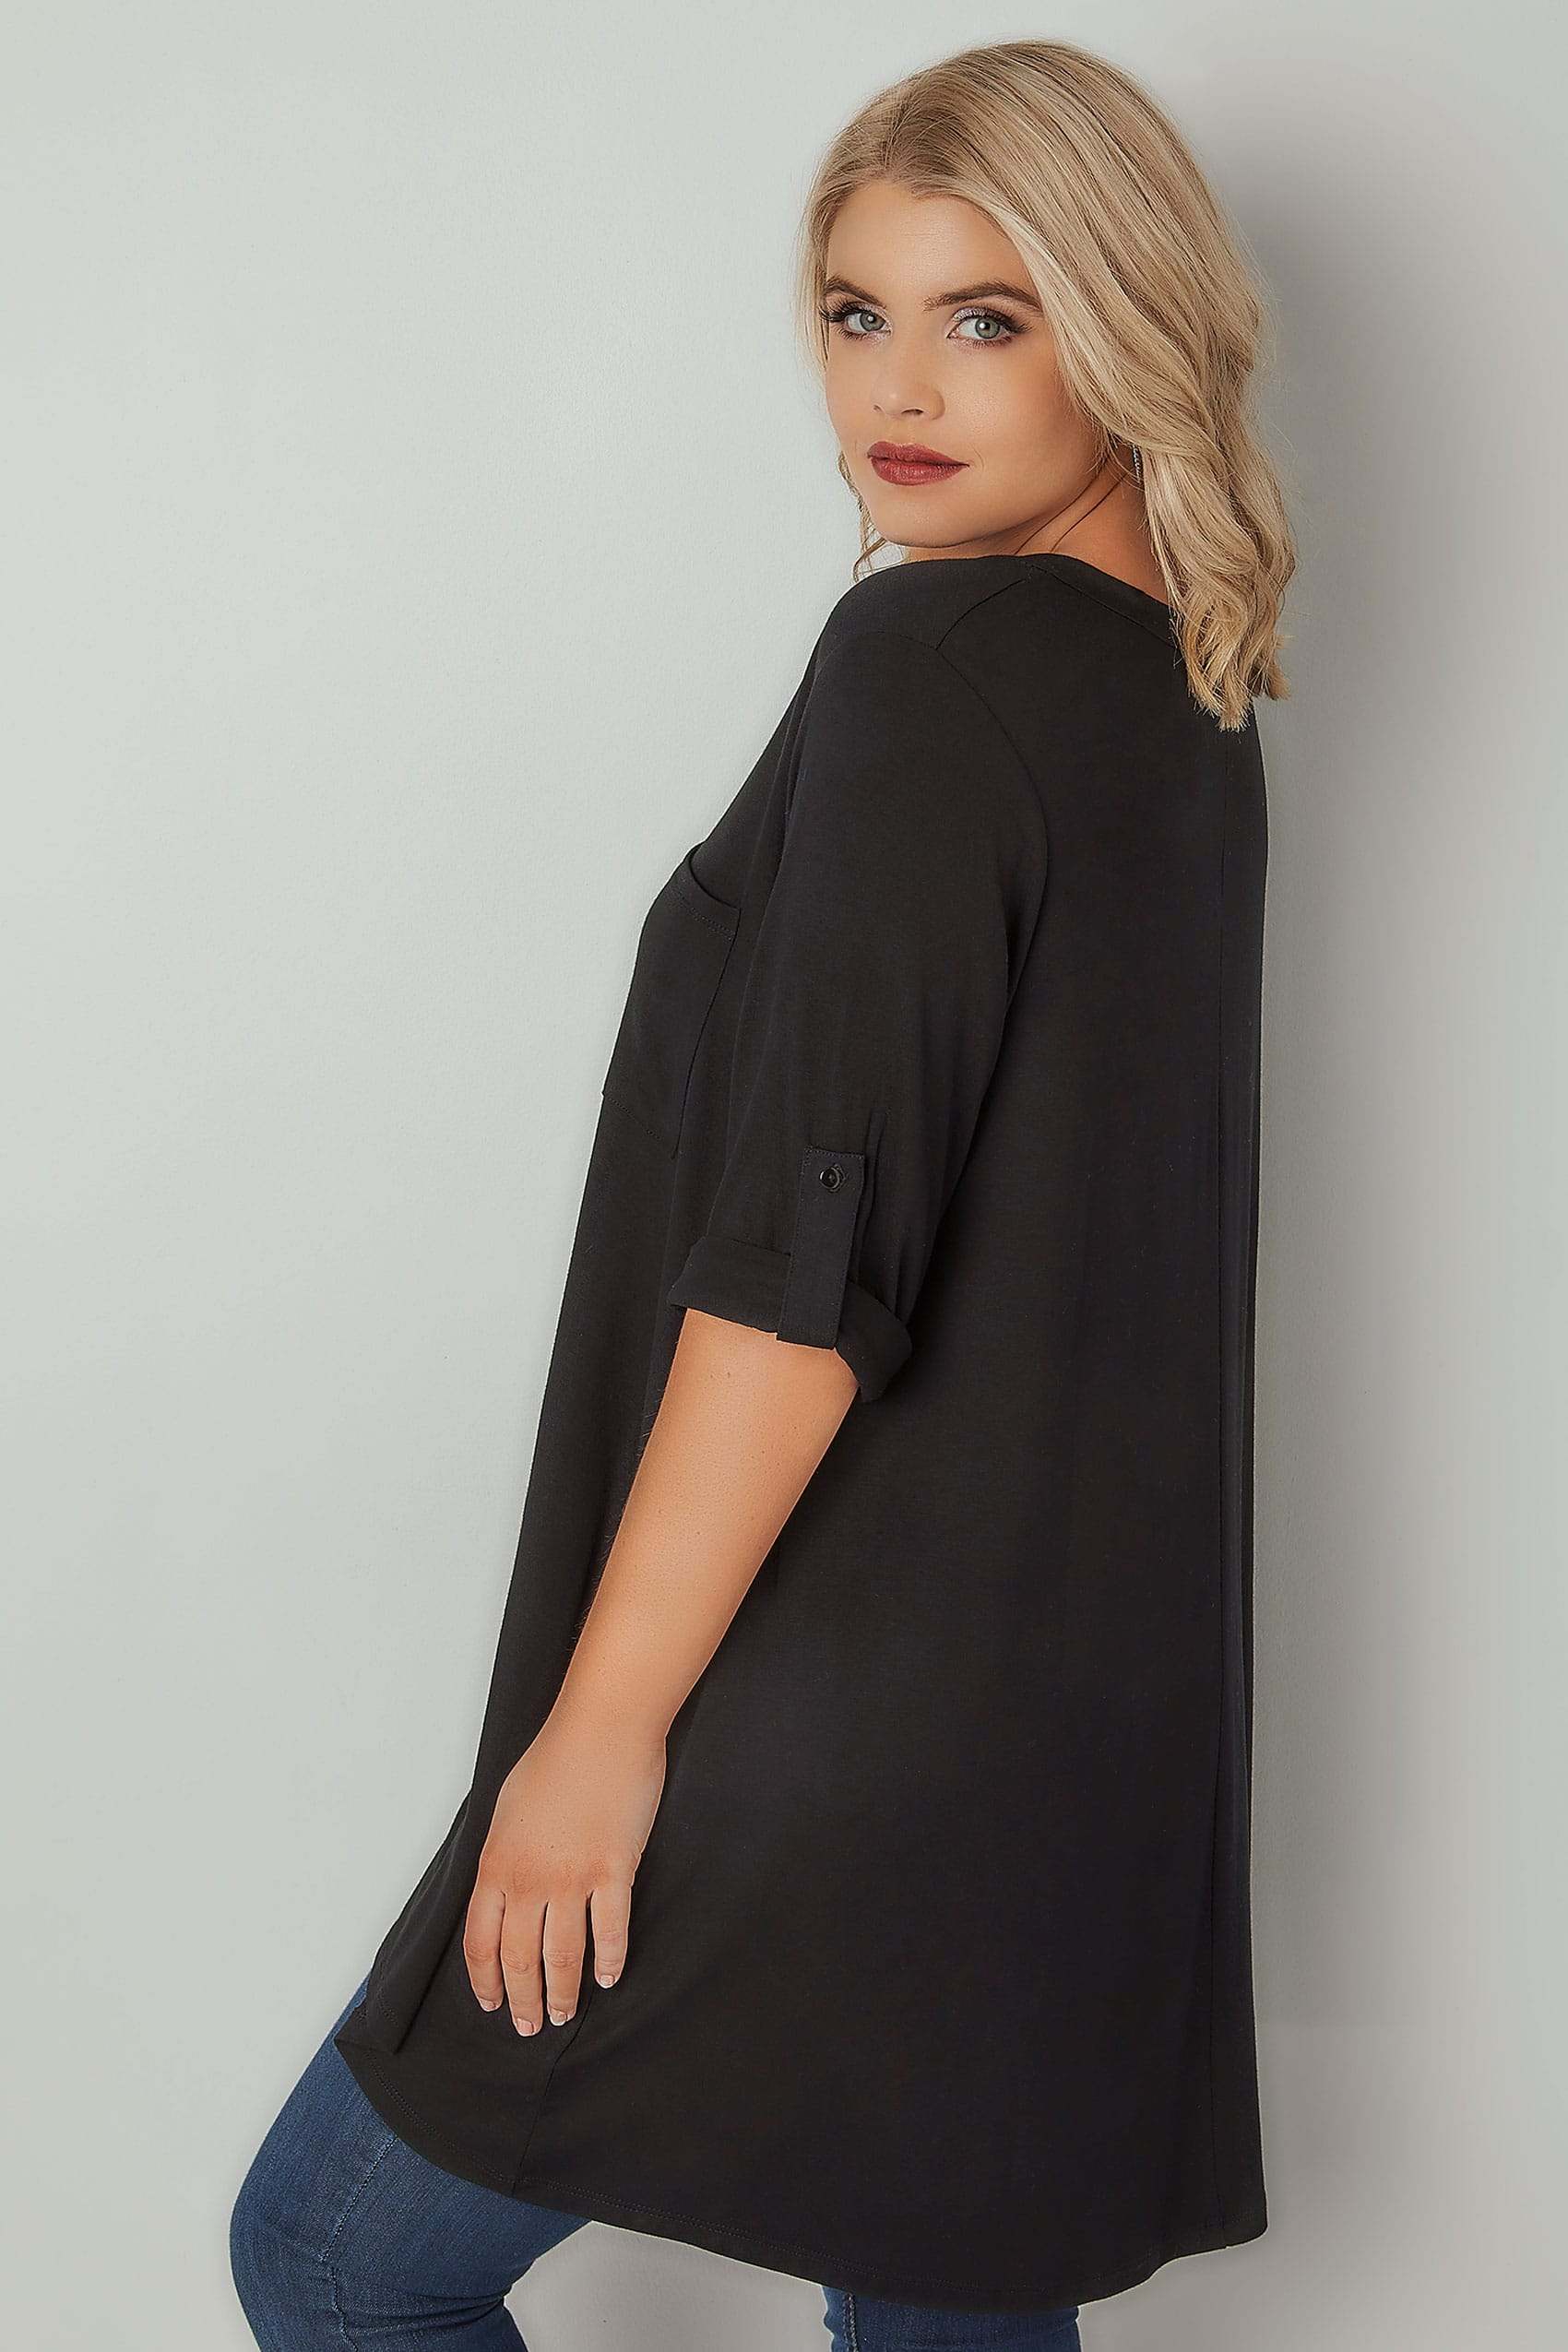 black longline top with zip front  plus size 16 to 36